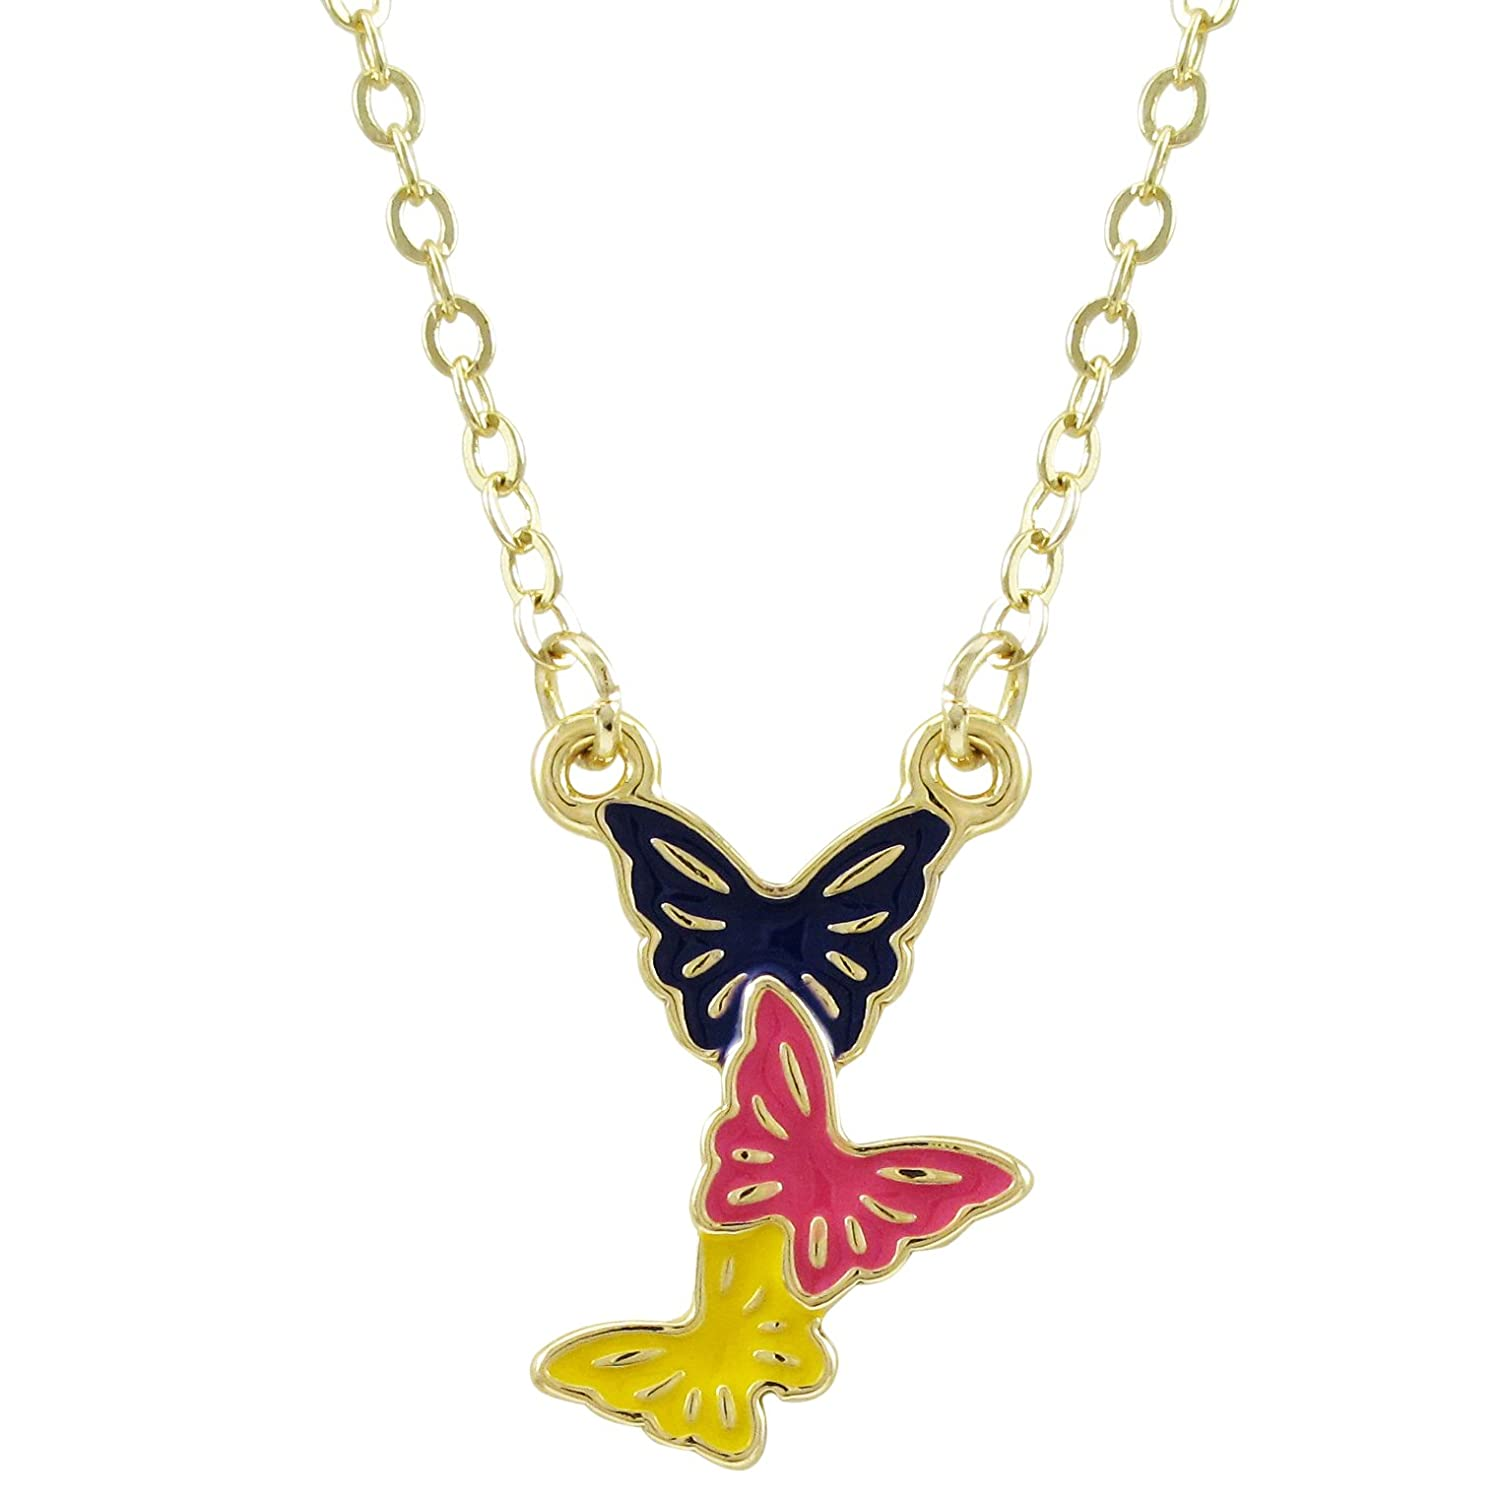 16+2 Extender Ivy and Max Gold Finish Multi-Color Enamel Childrens Teens Butterfly Necklace